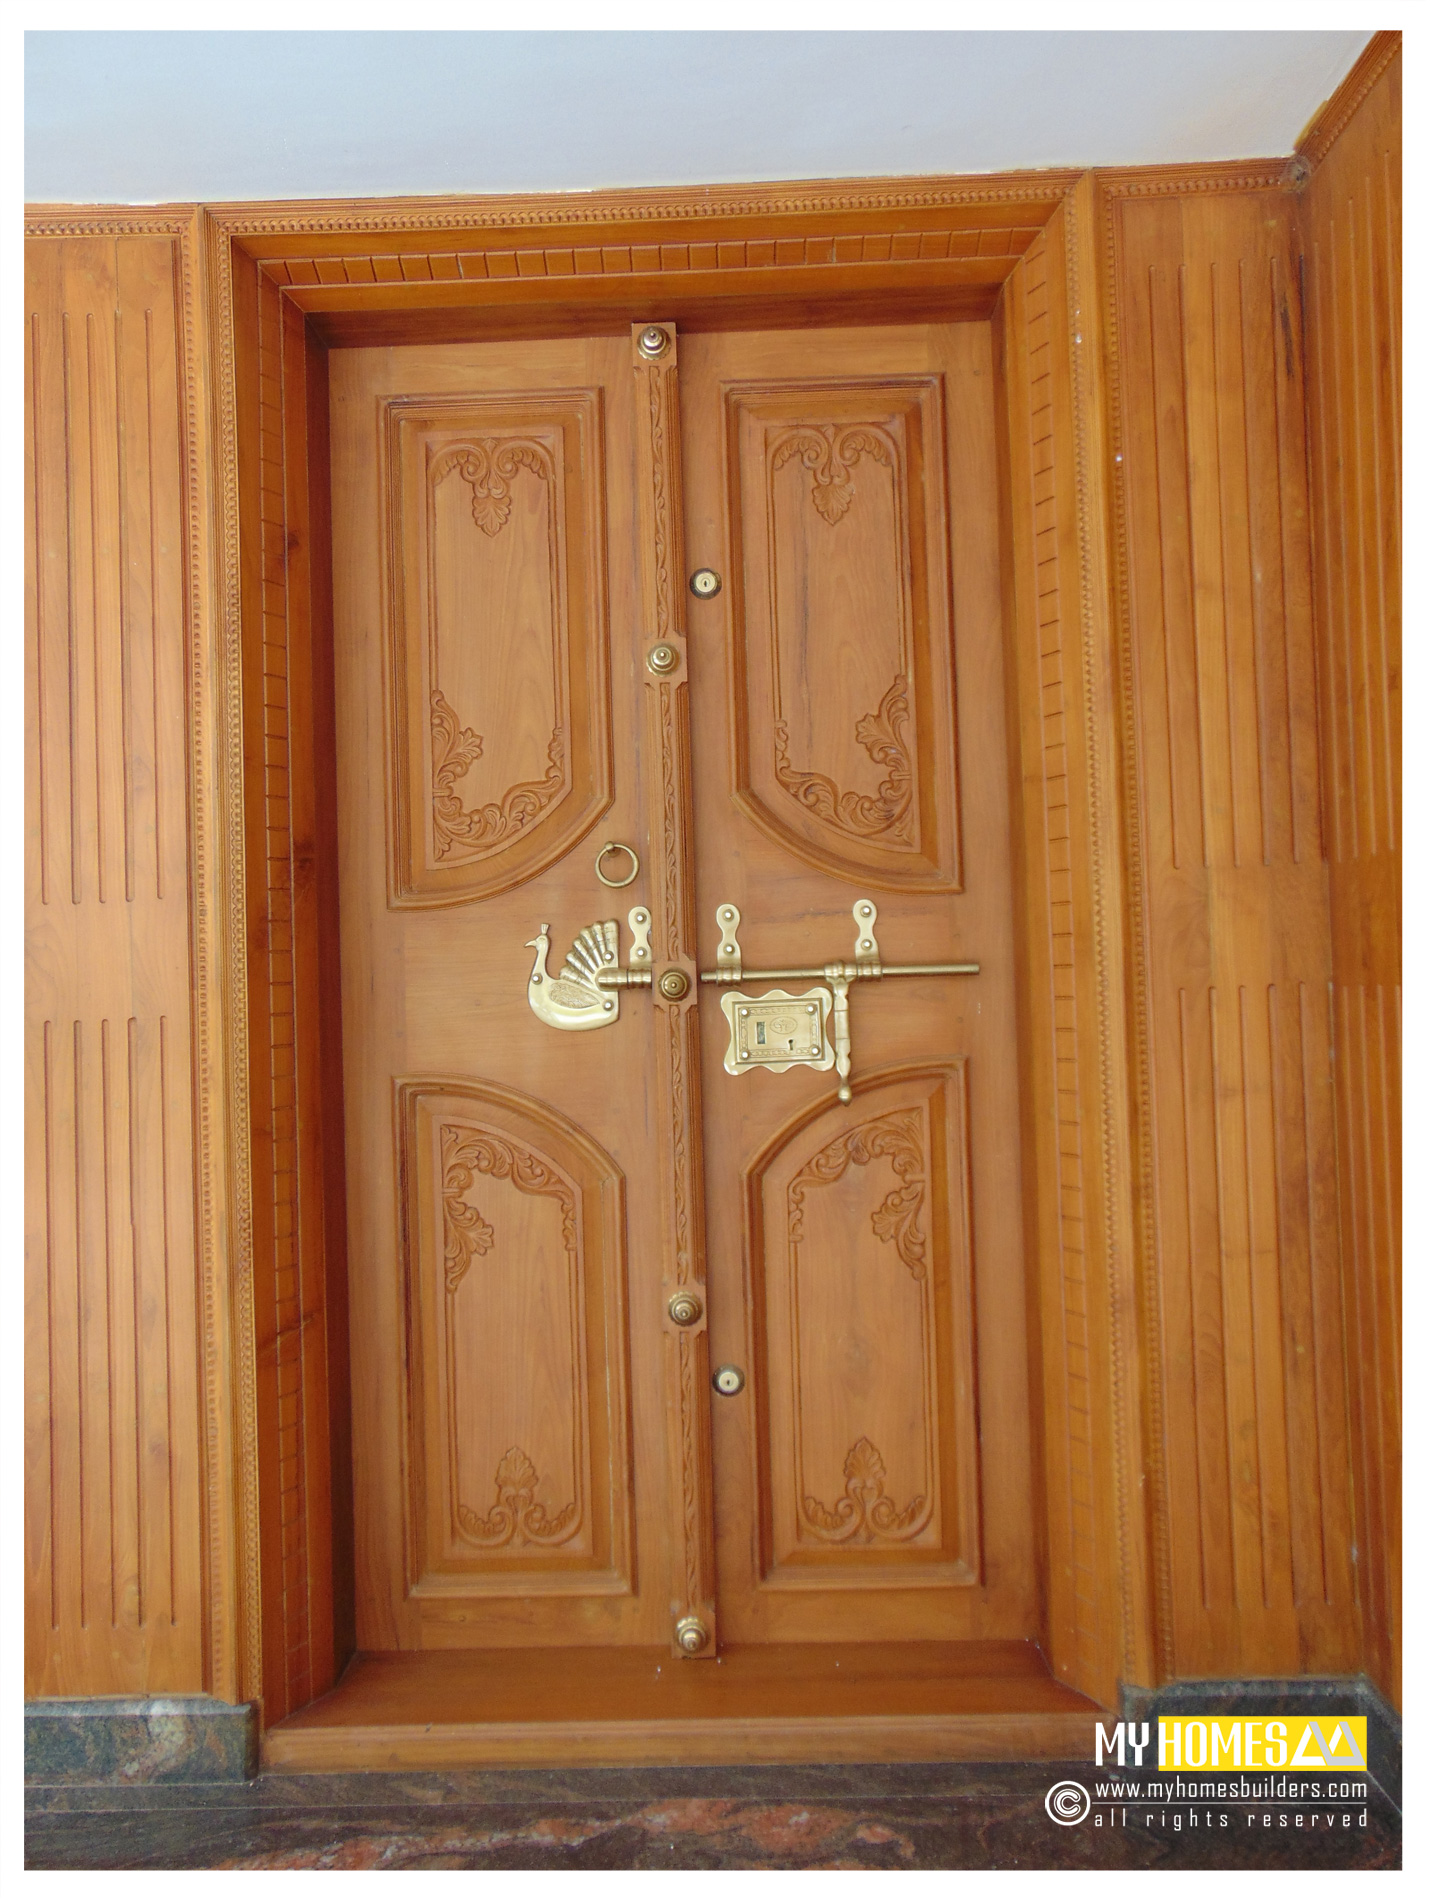 Browse Thousands Of Front Door Design Ideas And Pictures View - Main door designs for home